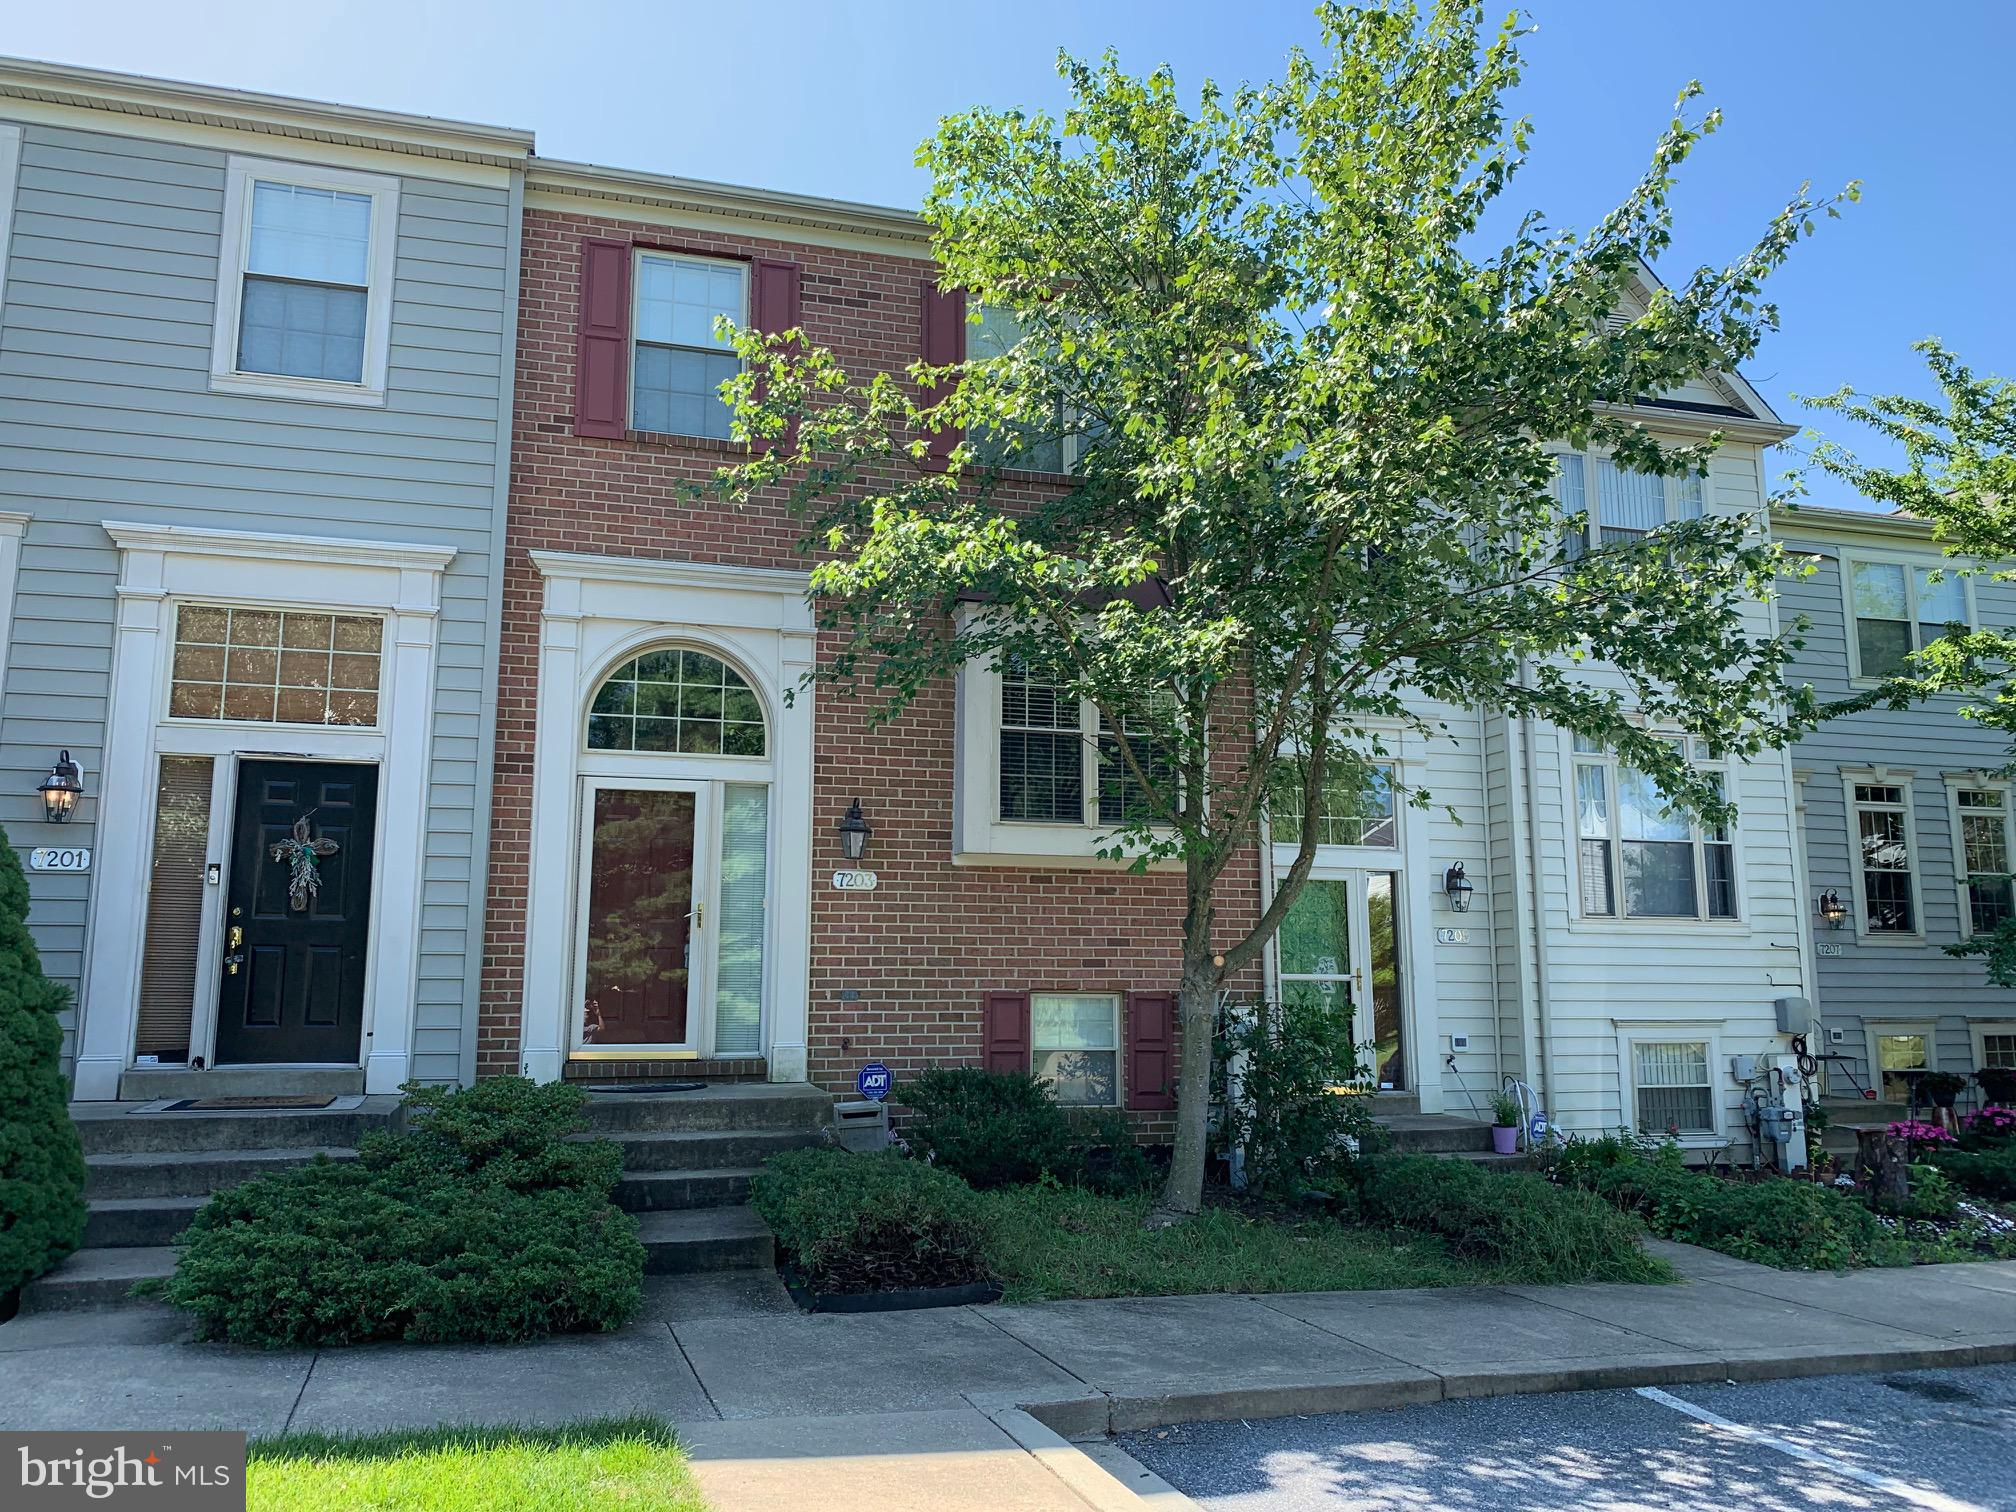 7203 SOLAR WALK, COLUMBIA, MD 21046